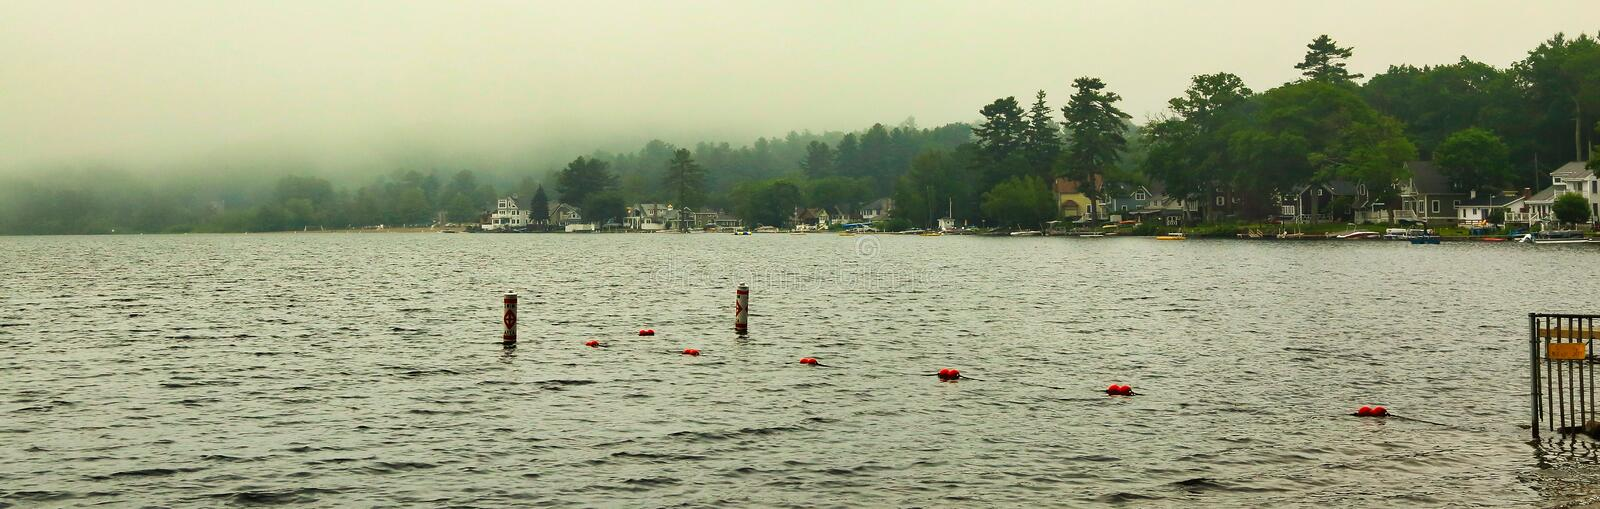 Crystal Lake Ellington Connecticut fog rain. Foggy rainy summer day on Crystal Lake in Ellington Connecticut stock images